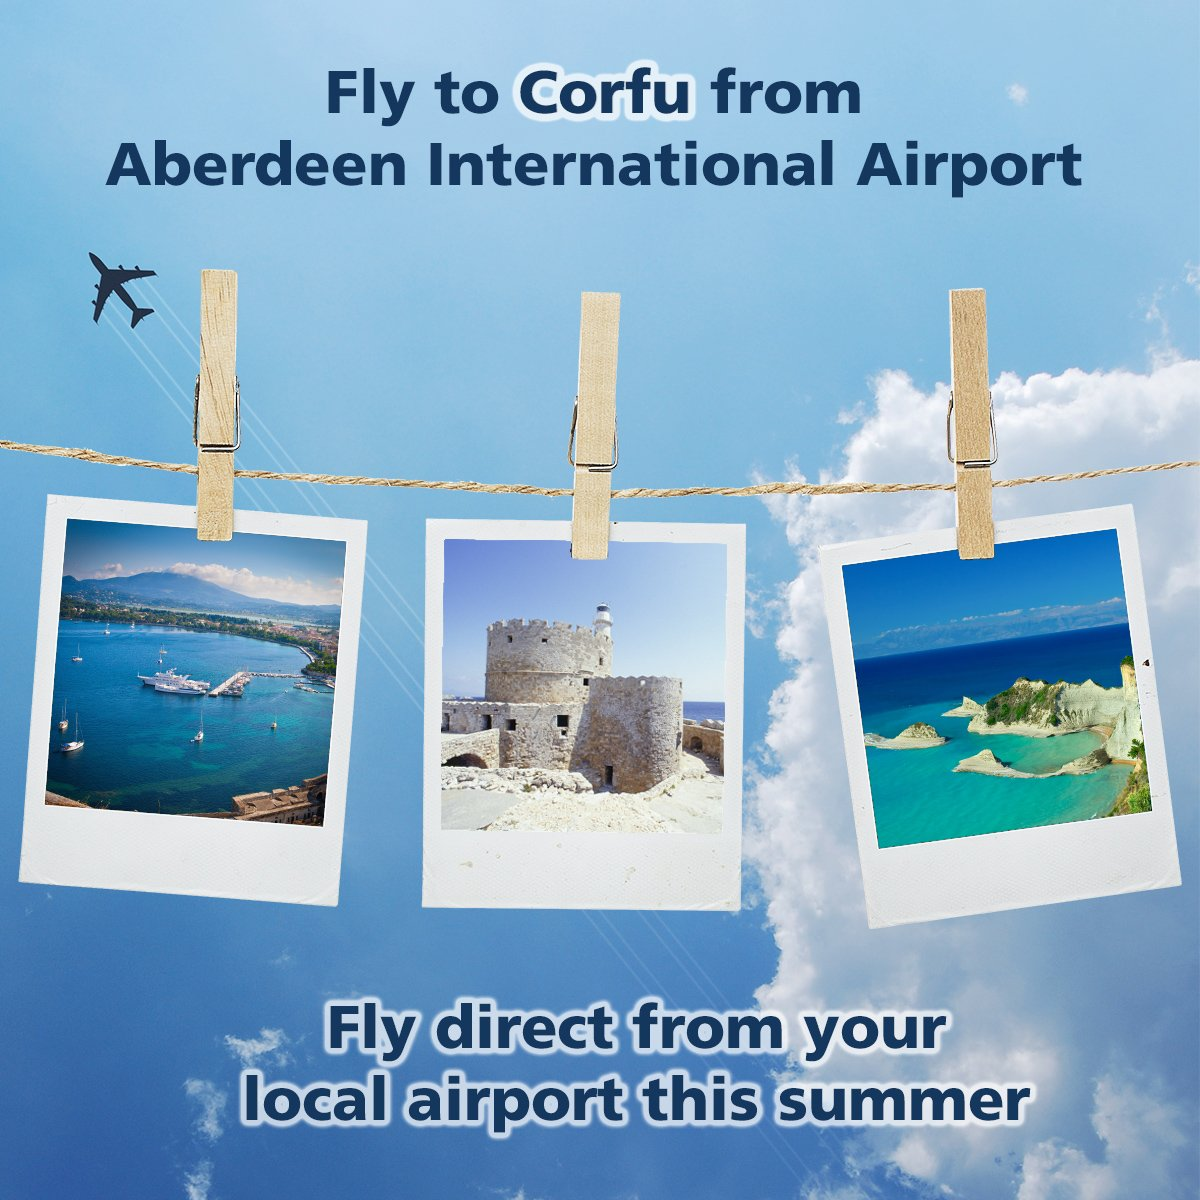 Fly direct to Corfu from your local airport this summer!